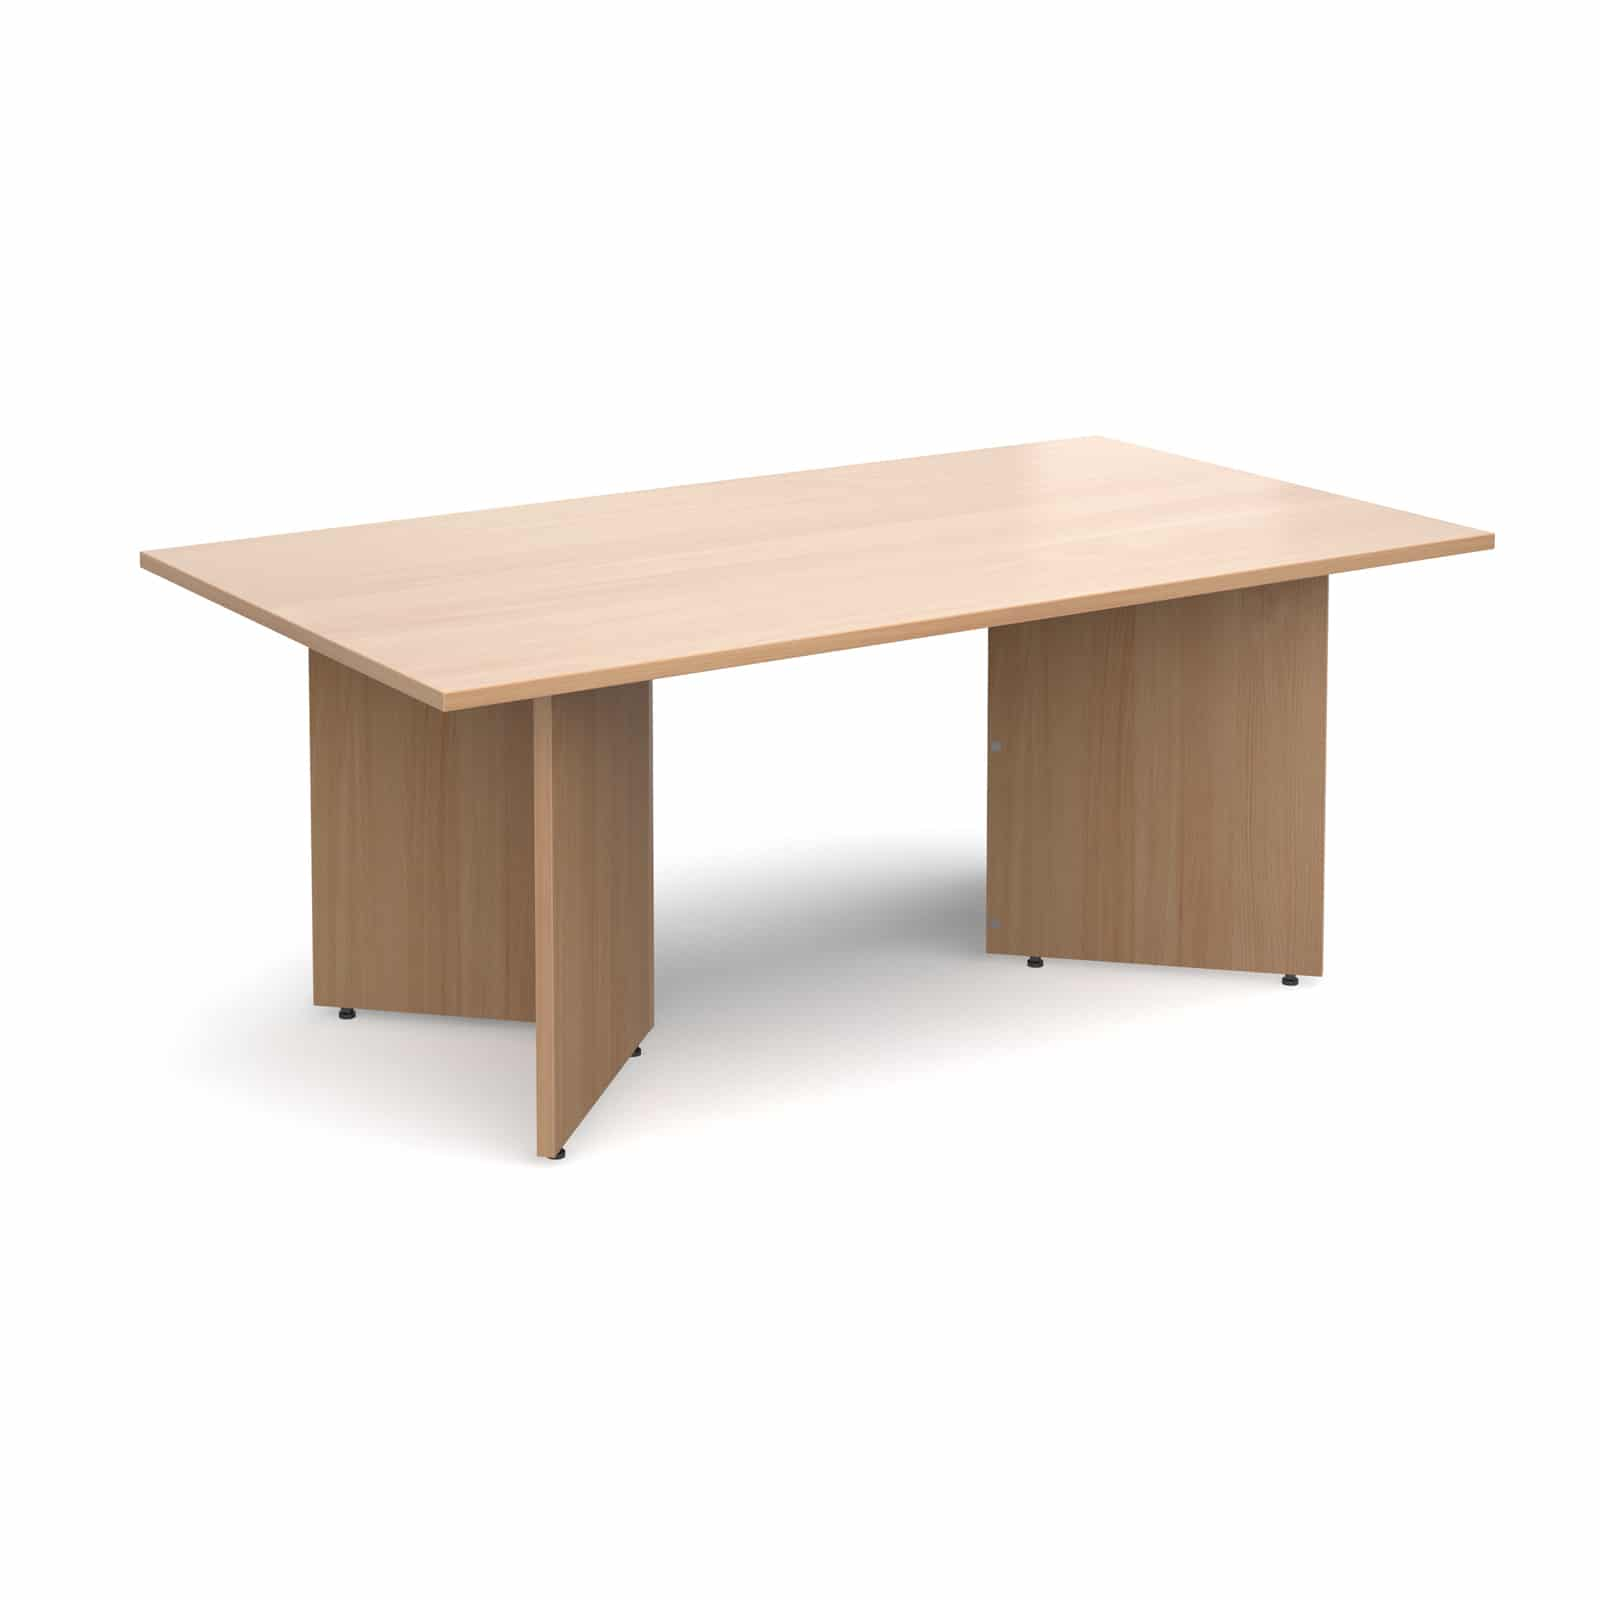 Meeting Room Boardroom Tables - BiMi